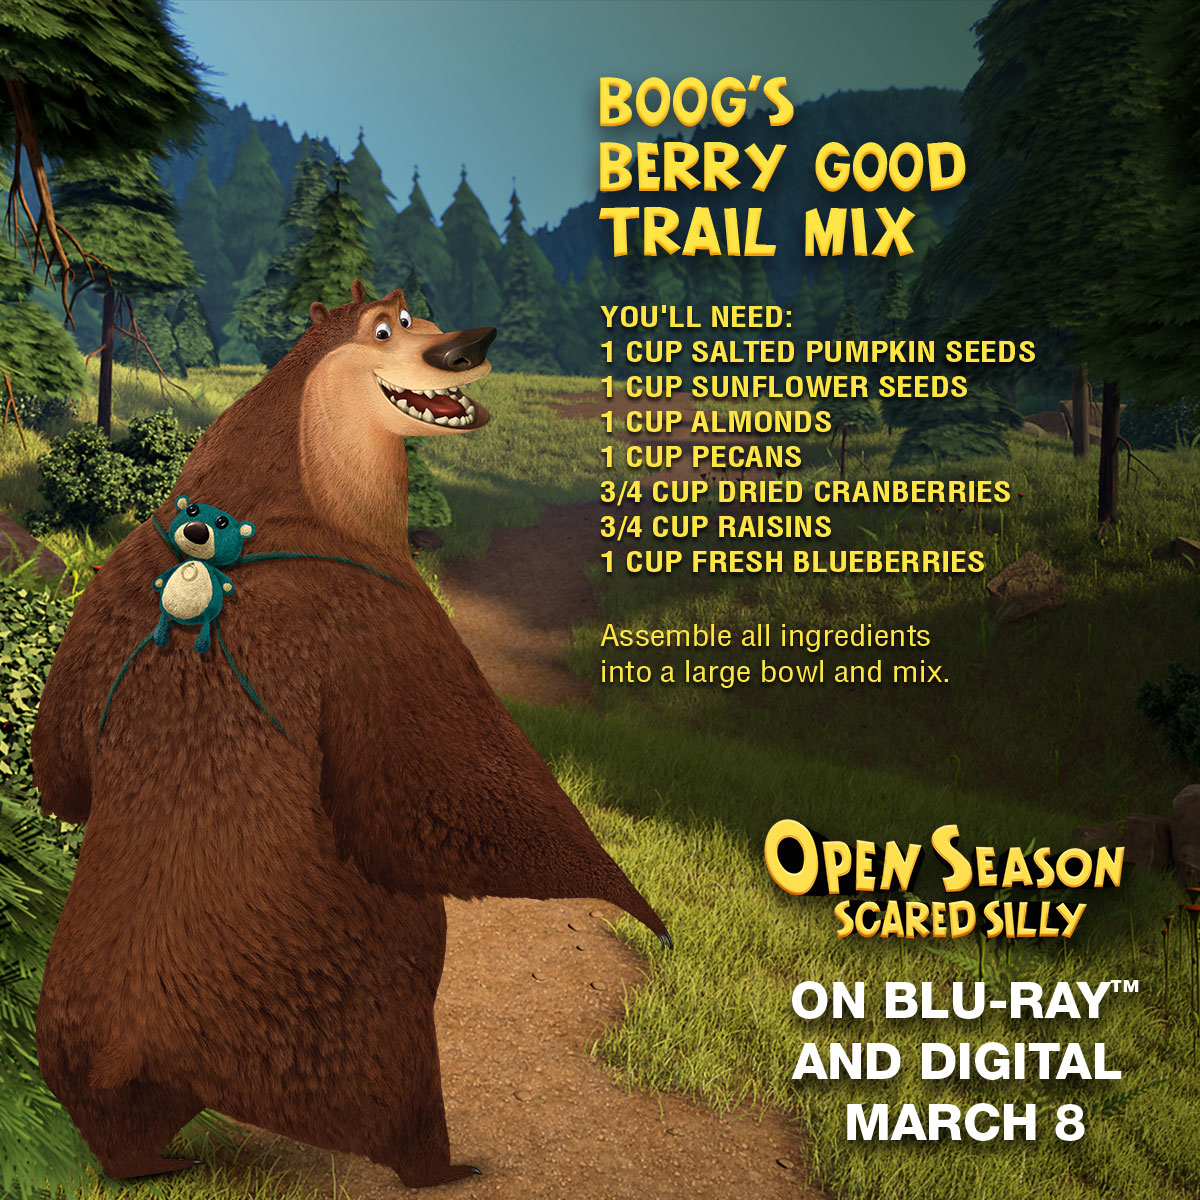 Open Season Scared Silly Berry Good Trail Mix